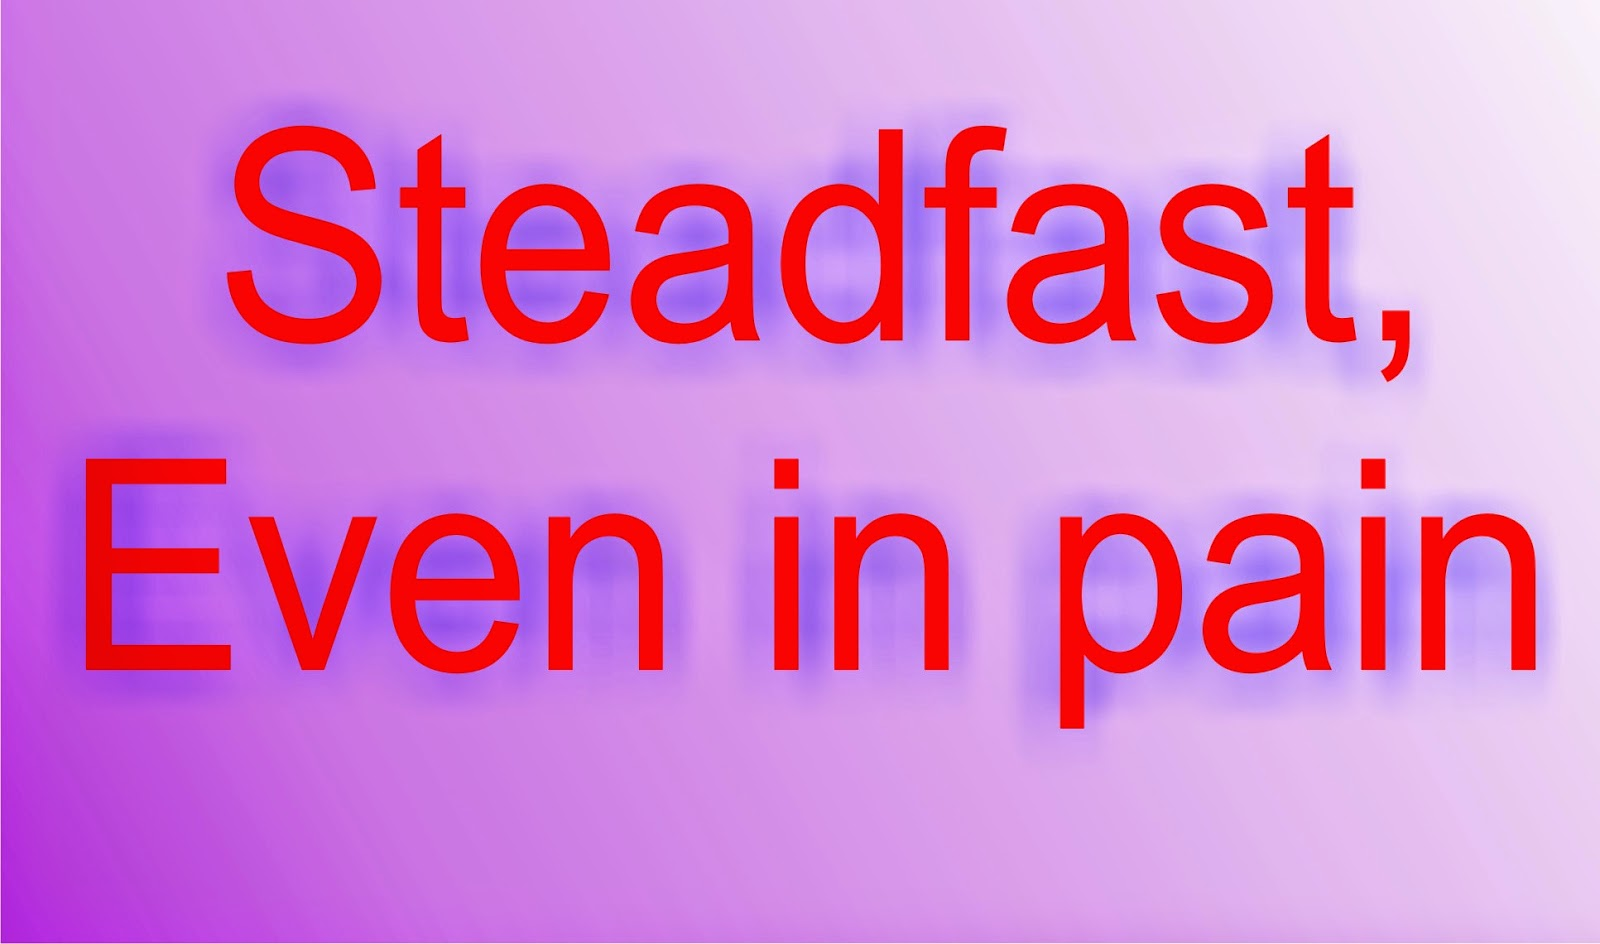 Steadfast, Even In Pain